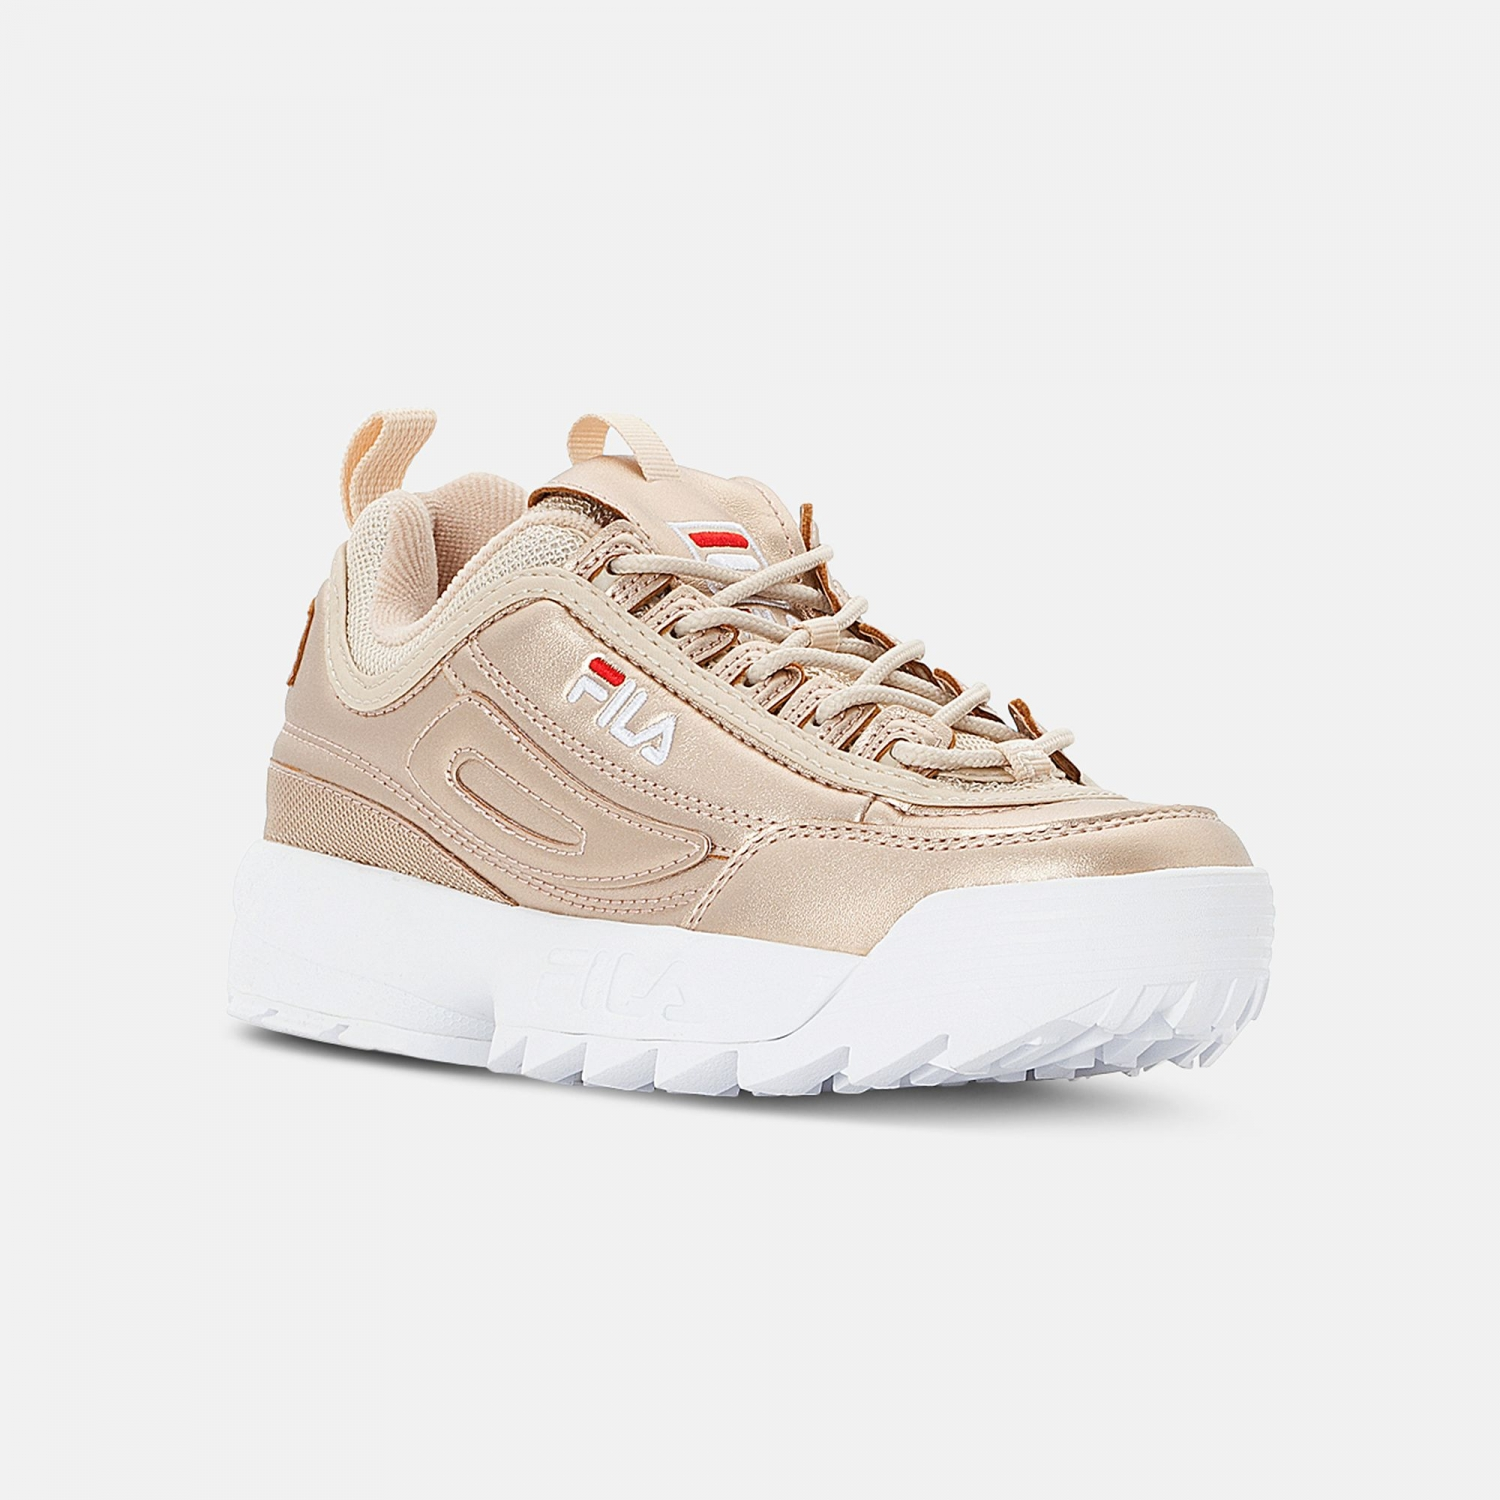 Fila Disruptor M Low Wmn gold Bild 2